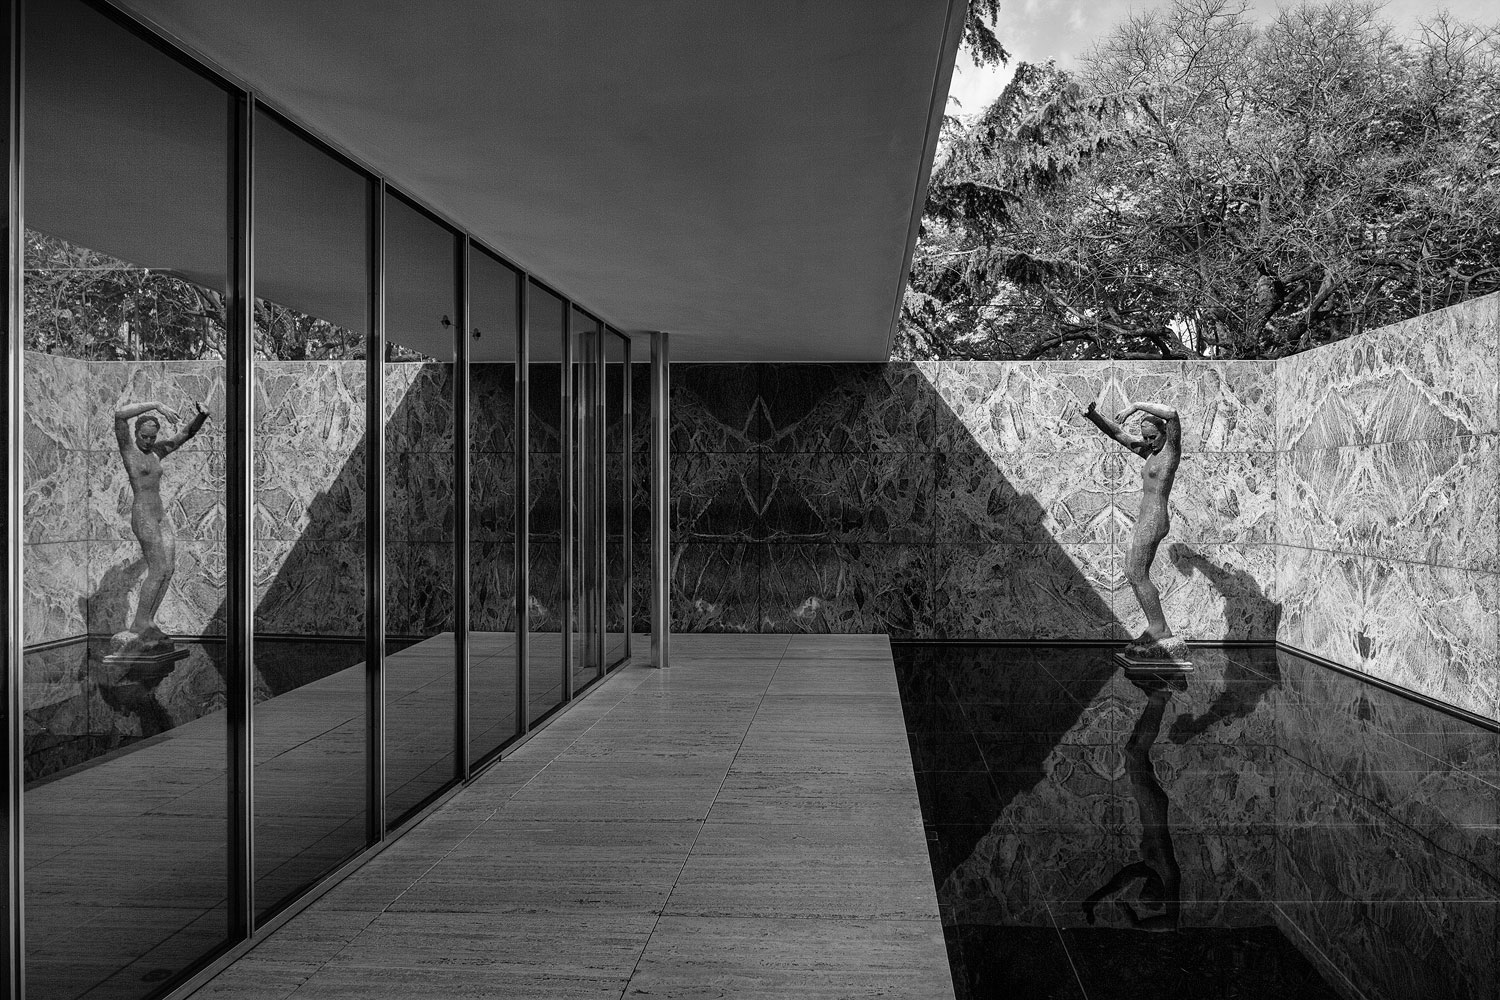 100 mies van der rohe barcelona the barcelona pavilion u0027s lost drawings for the first. Black Bedroom Furniture Sets. Home Design Ideas